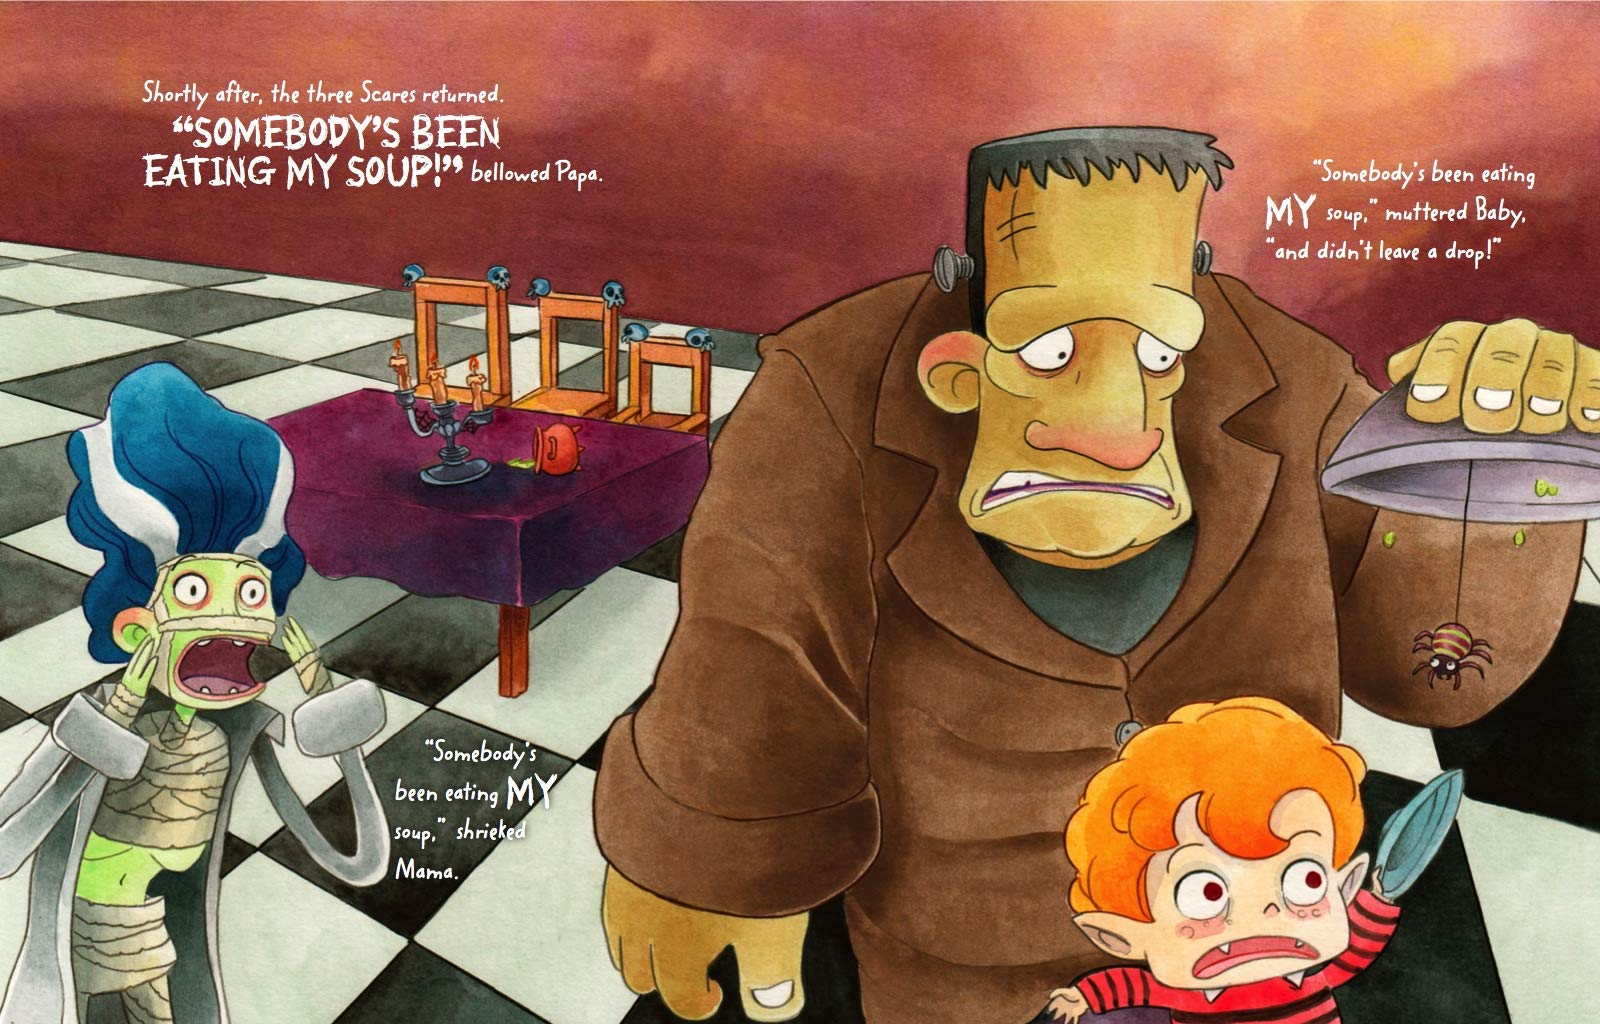 celebrate-picture-books-picture-book-review-moldilocks-and-the-three-scares-soup-eaten